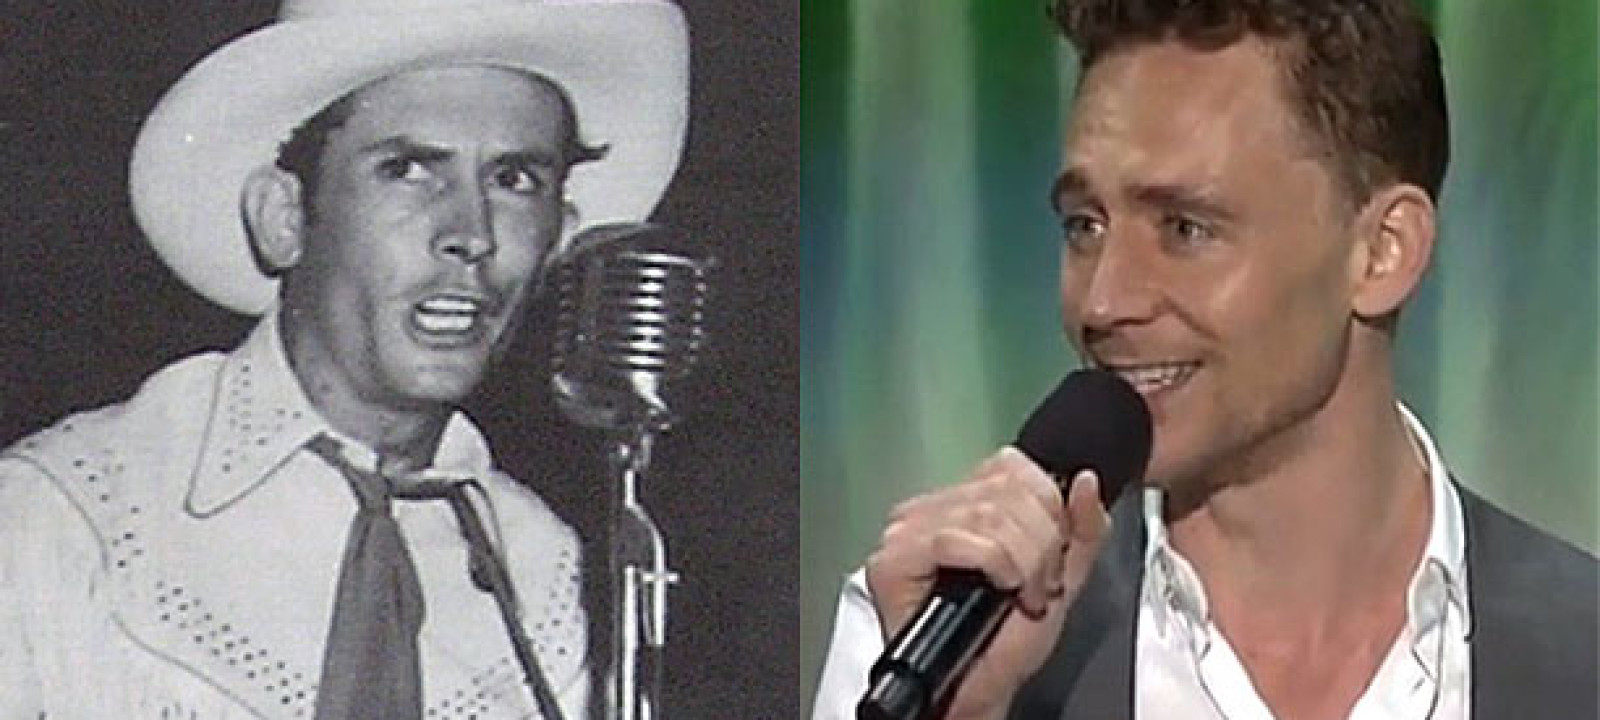 Hank Williams and Tom Hiddleston